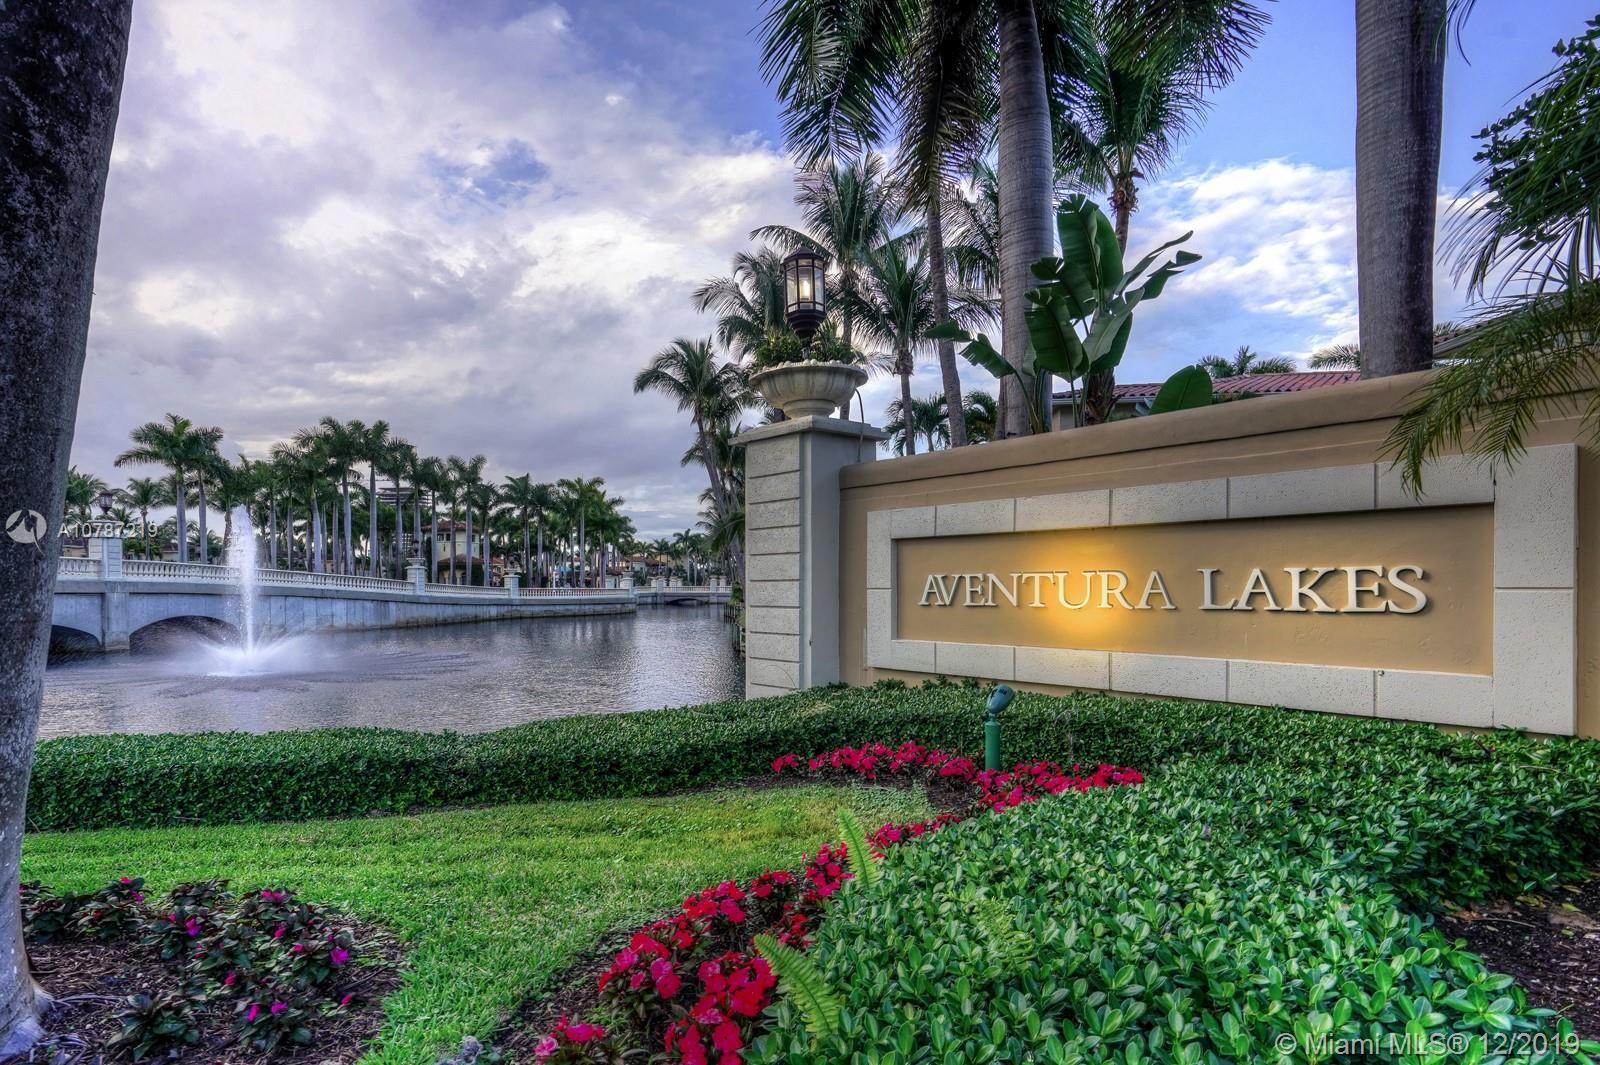 Aventura Lakes gated community located in the heart of Aventura, Fl Lakefront Gem, one of largest h